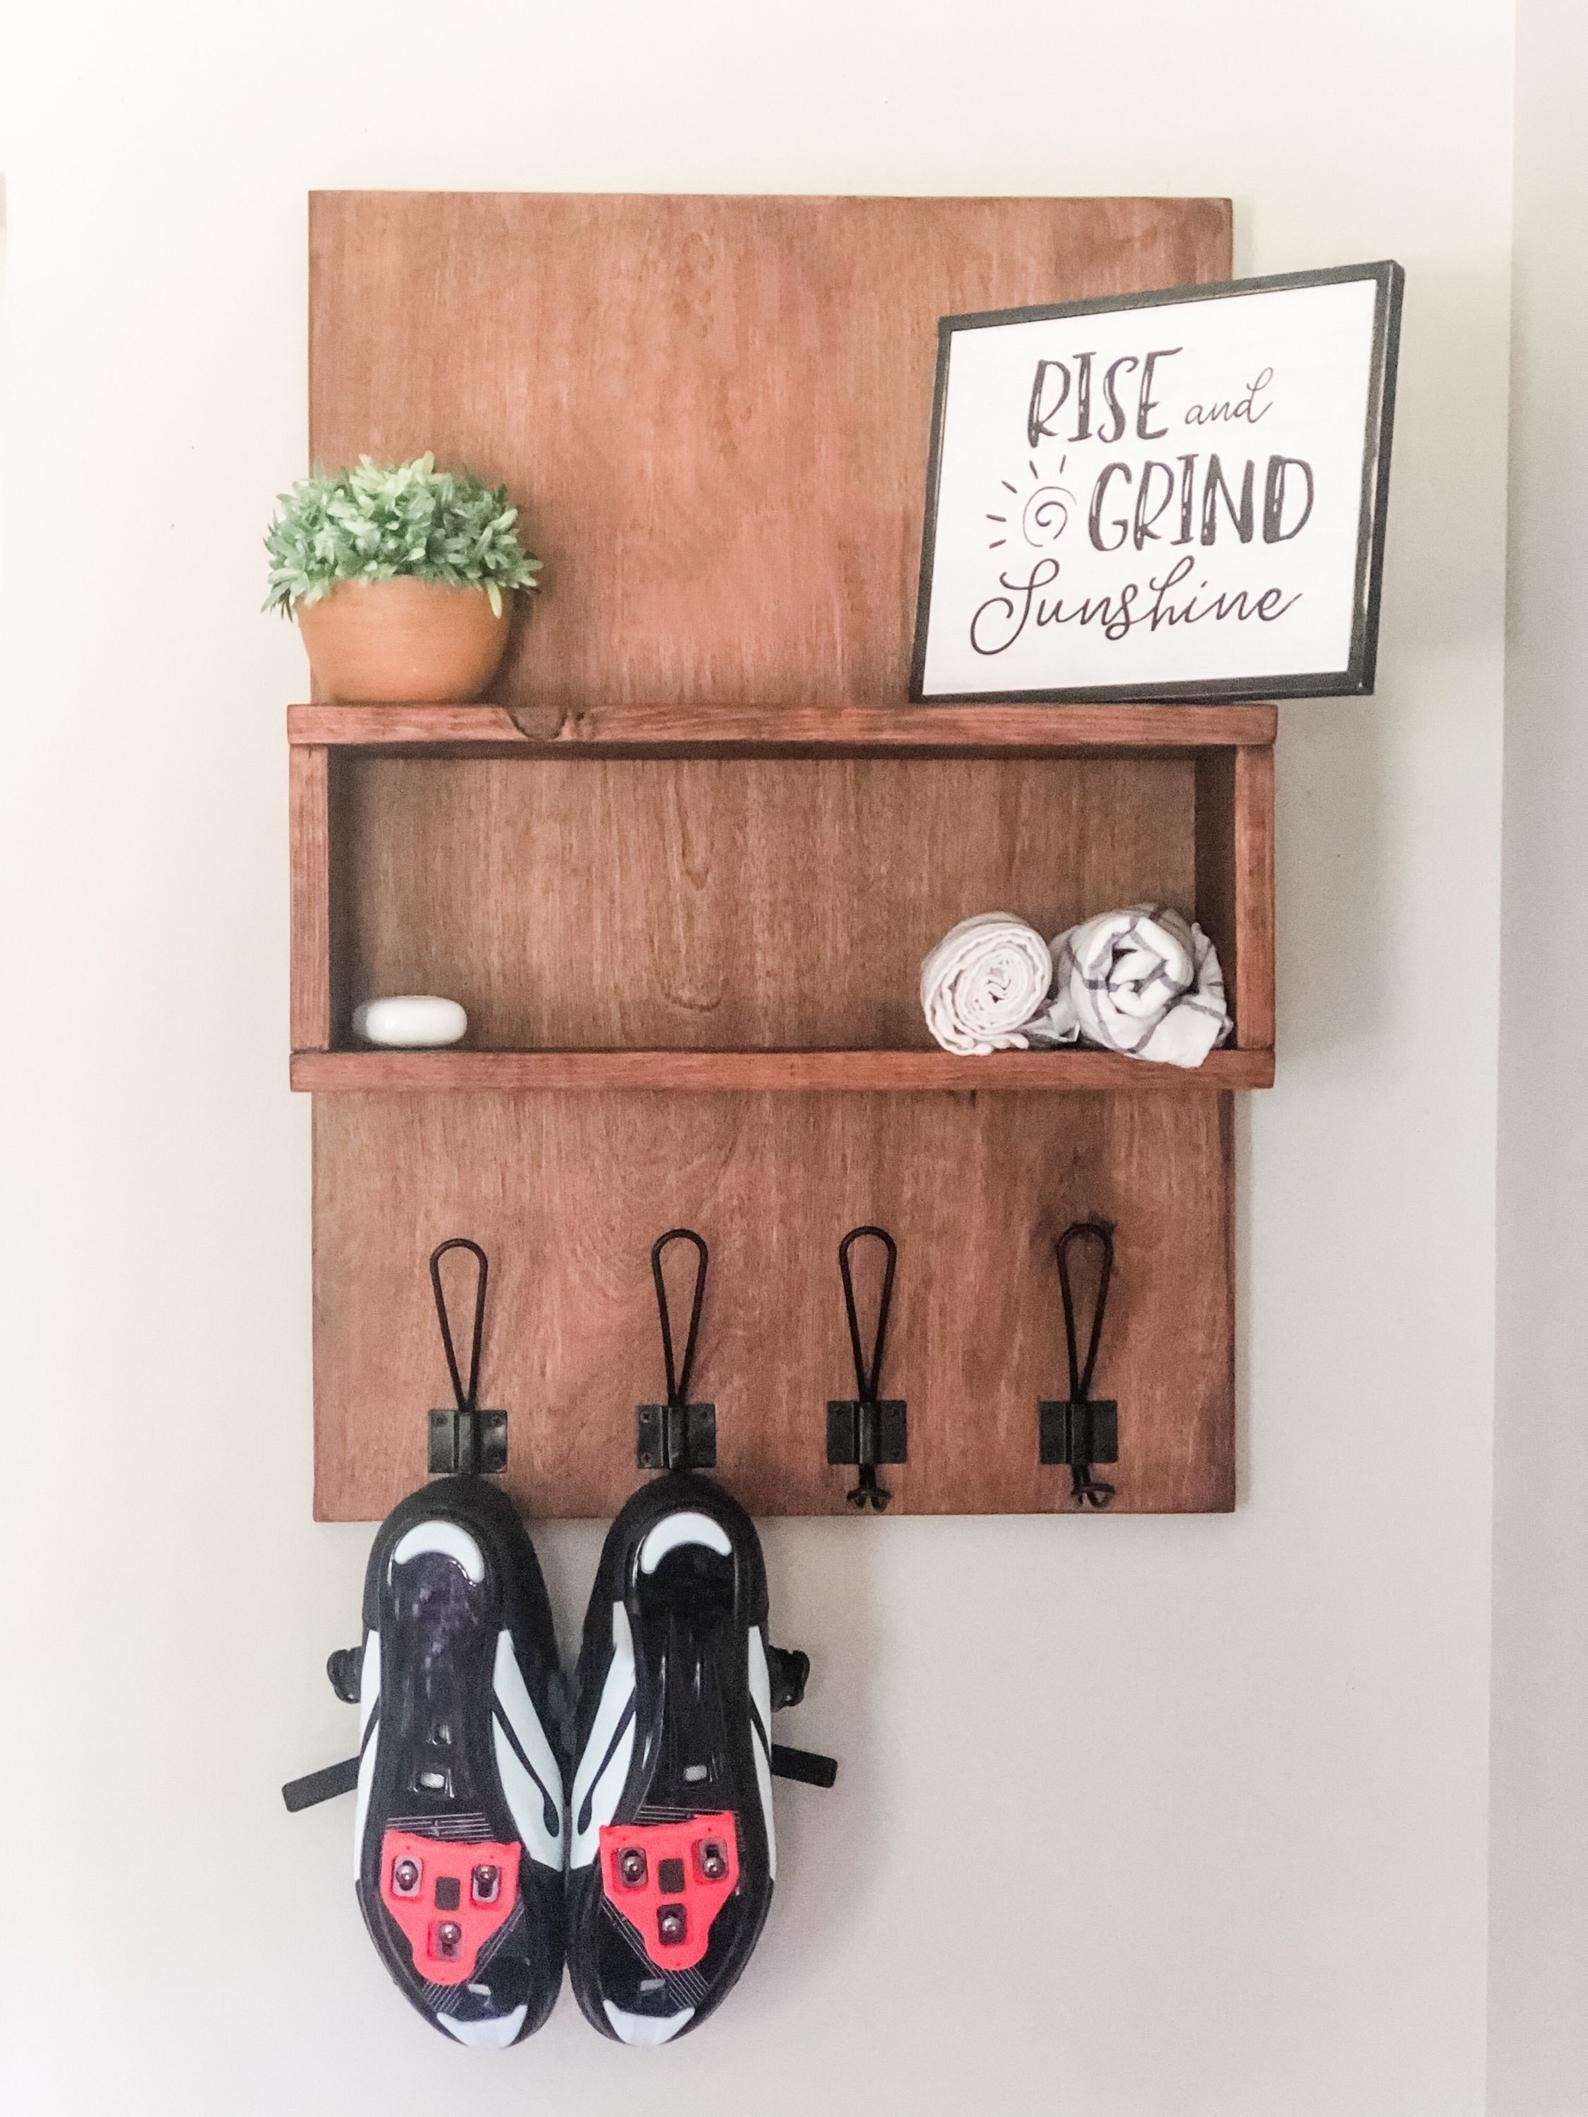 A wood shelf with hooks for the Peloton cleats hangs on the wall.